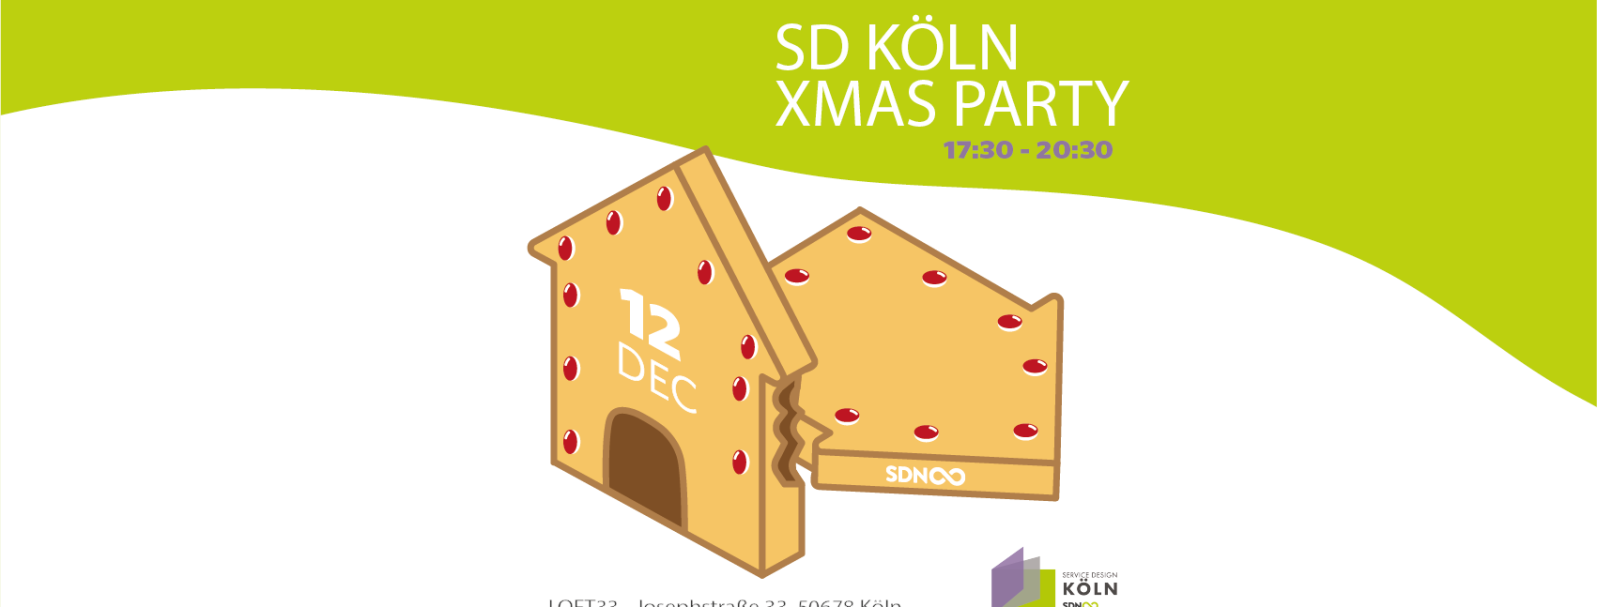 SD Köln XMAS Party